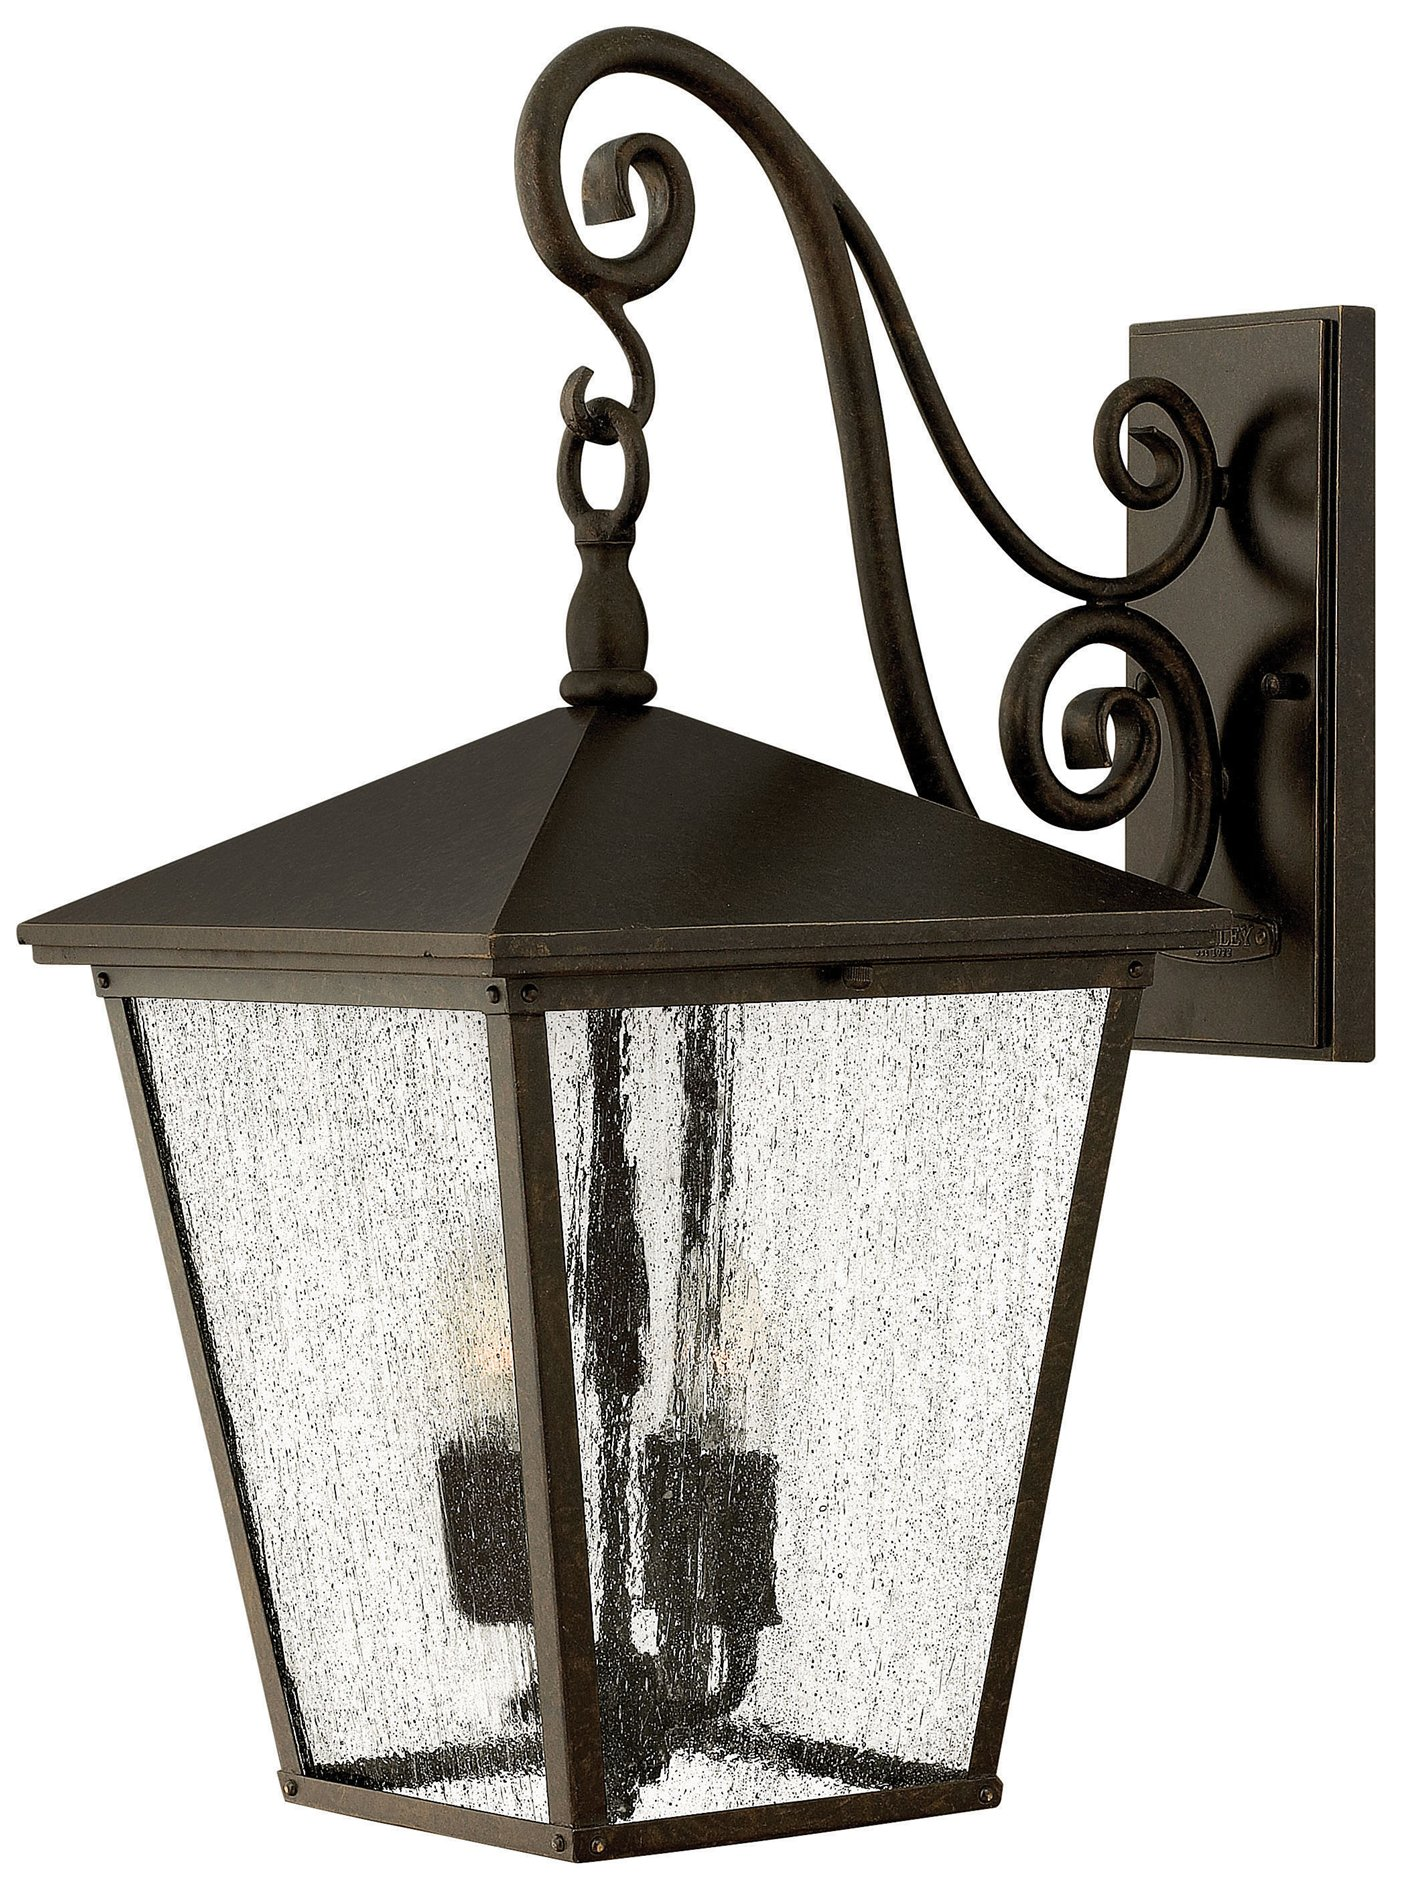 Hinkley Lighting 1435RB Trellis Traditional Outdoor Wall Sconce - Large HK-1435-RB